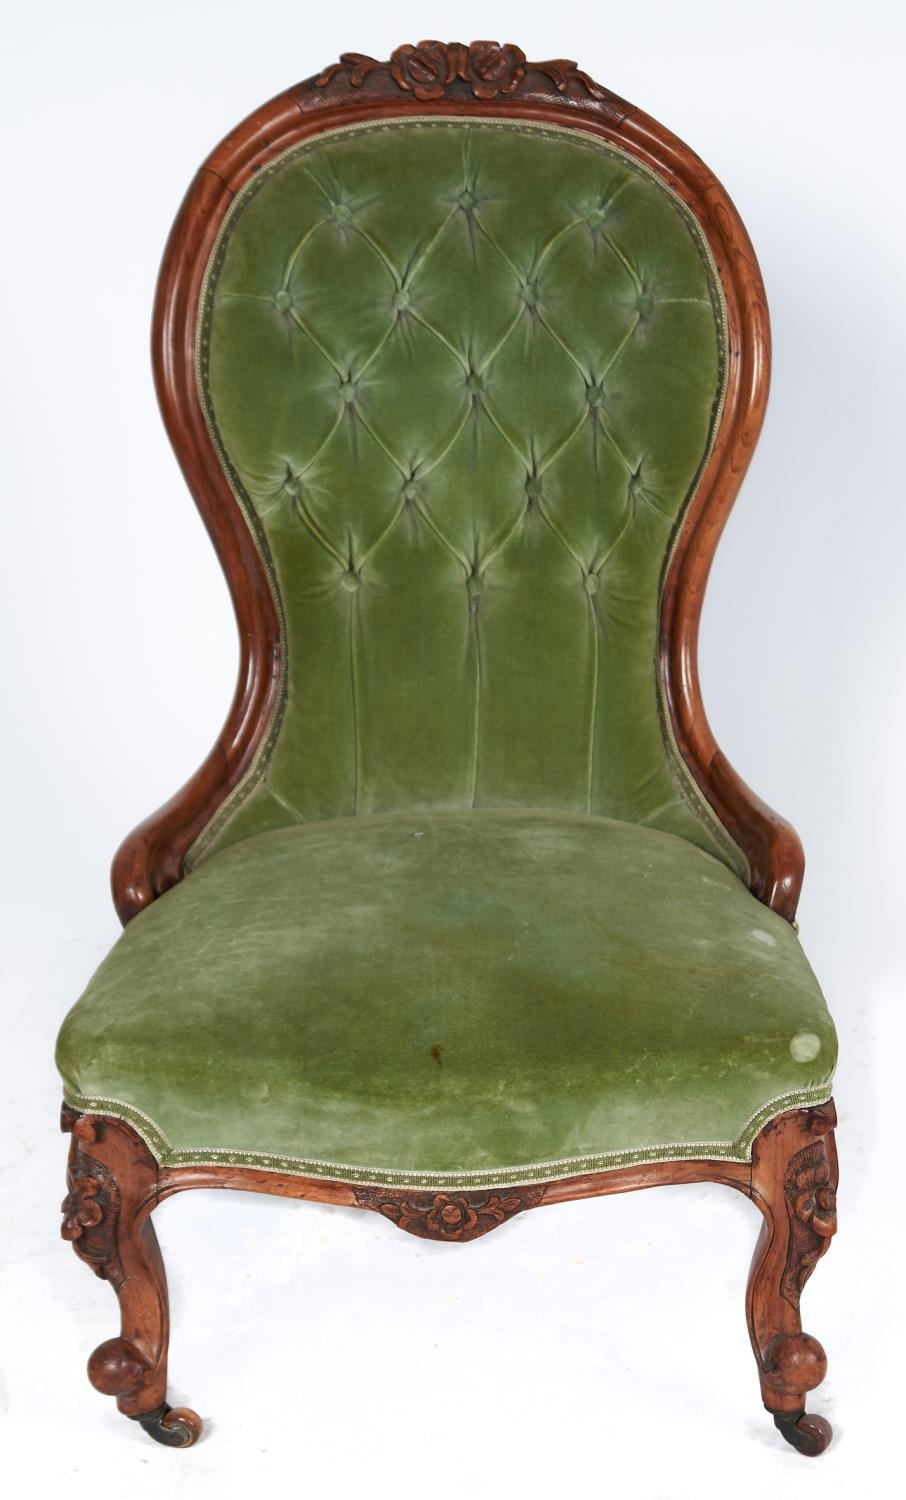 A Victorian walnut nursing chair, c1870, the top rail carved with flowerheads and leafage on a